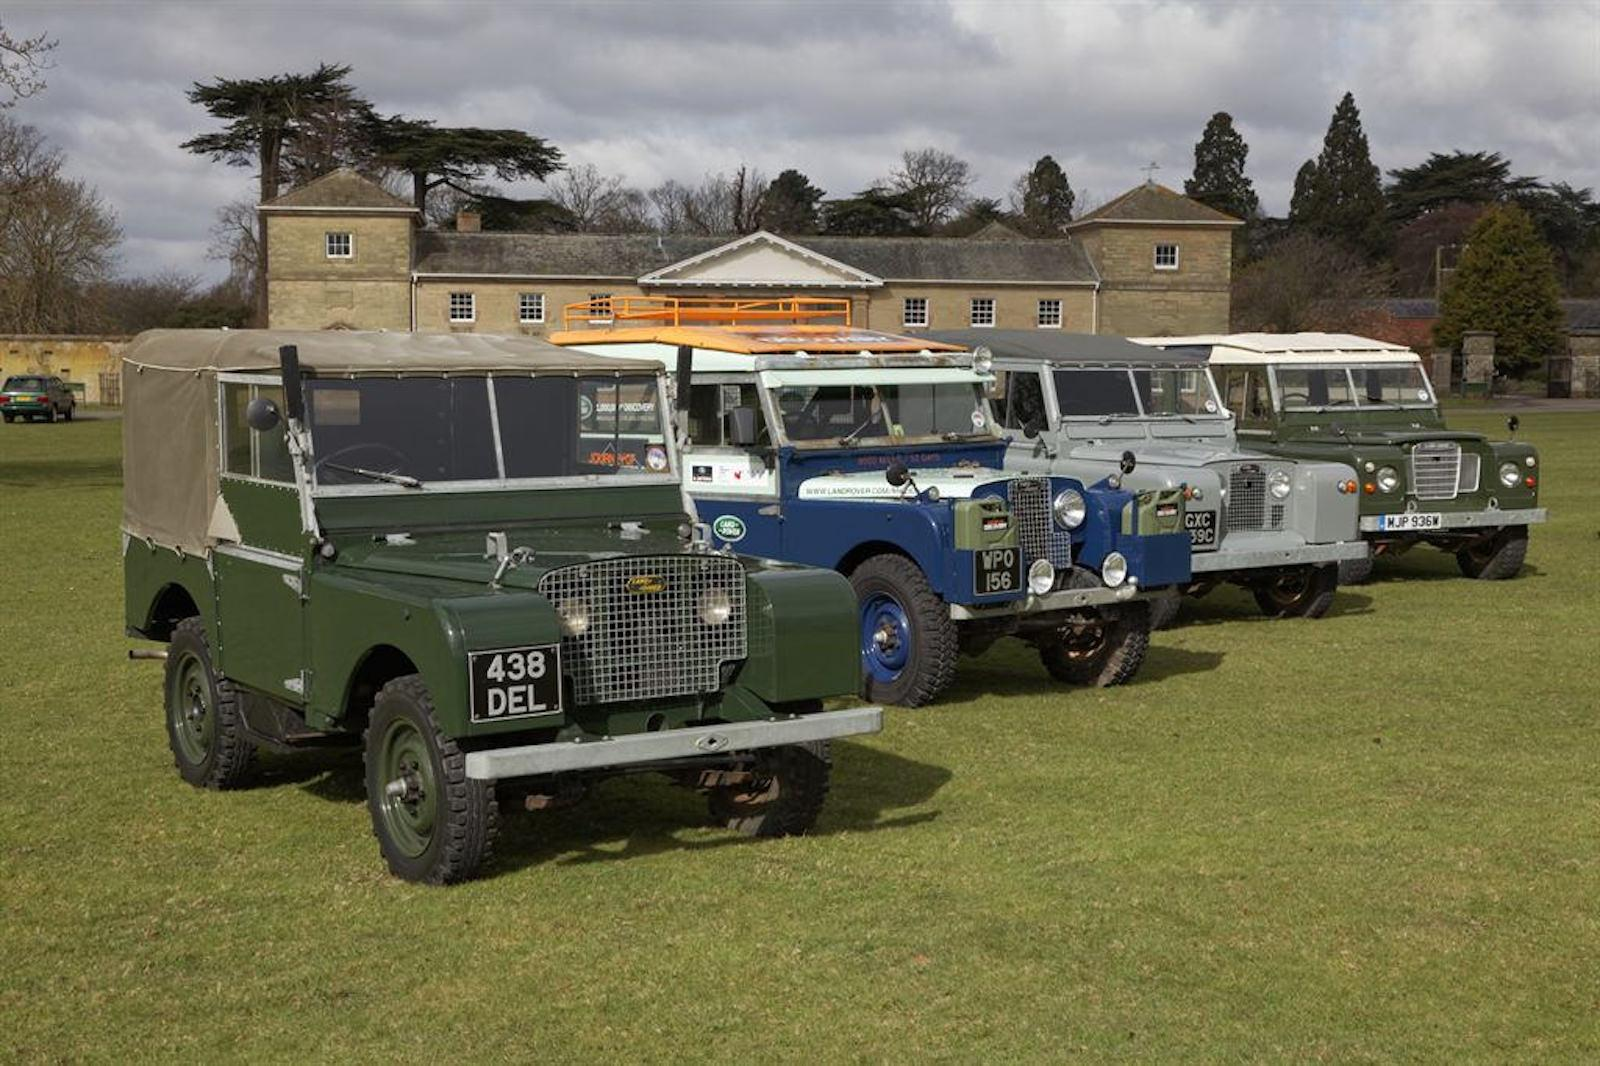 New Land Rover show at Bicester Heritage